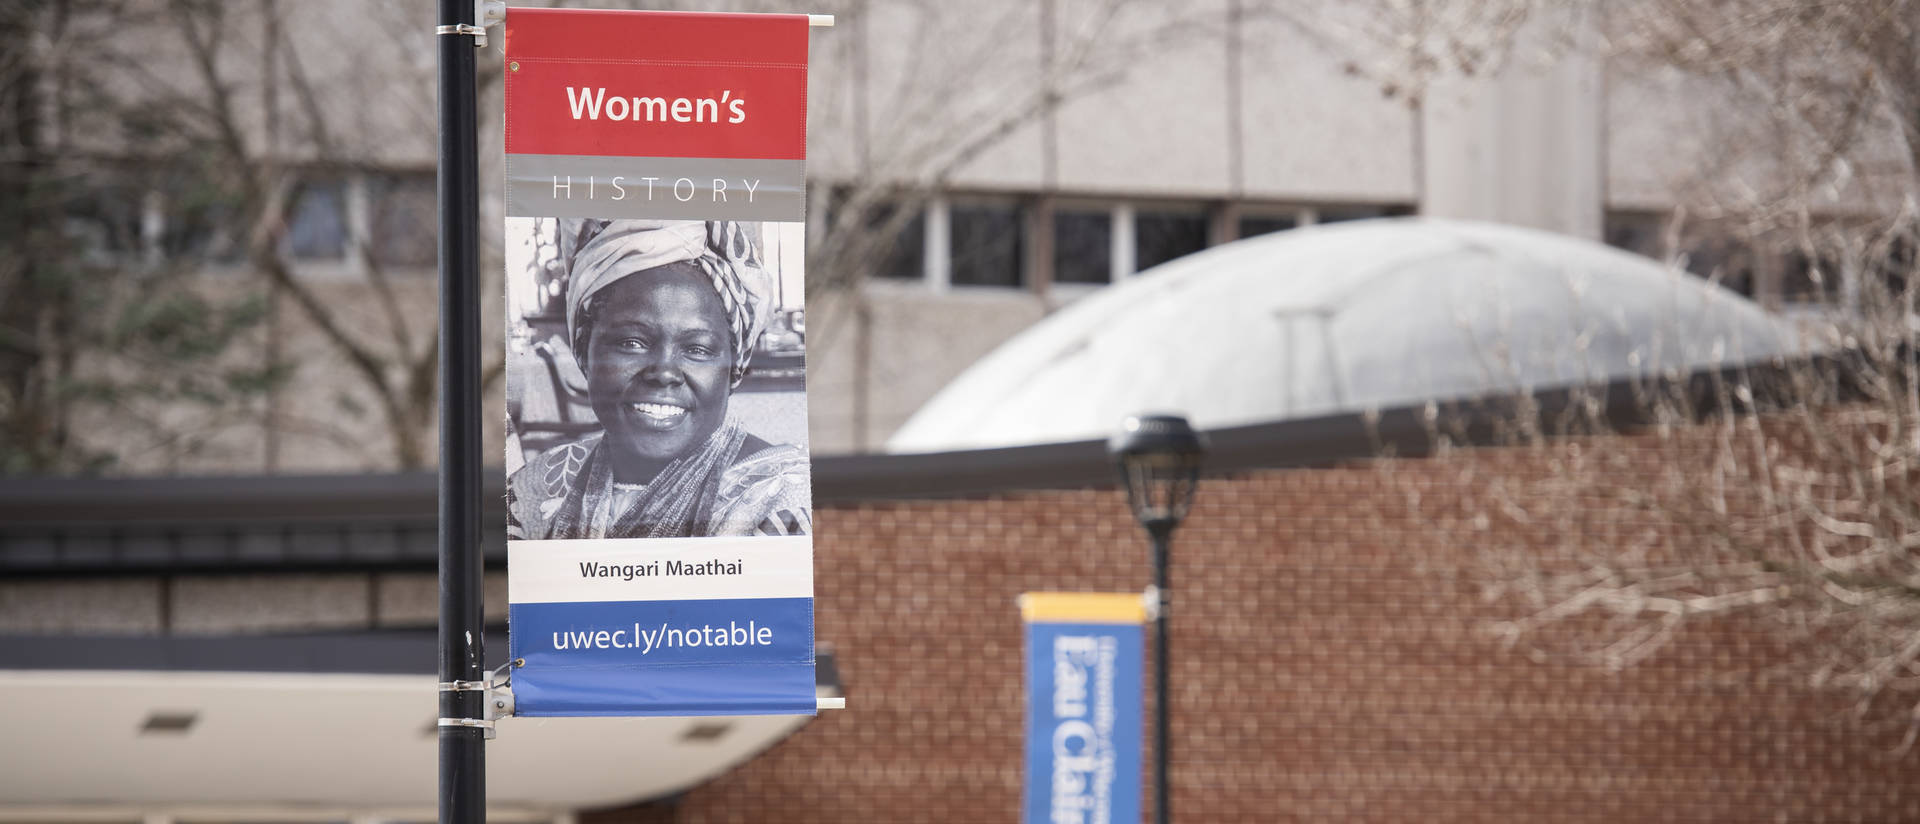 Women's History Month banner outside on campus mall